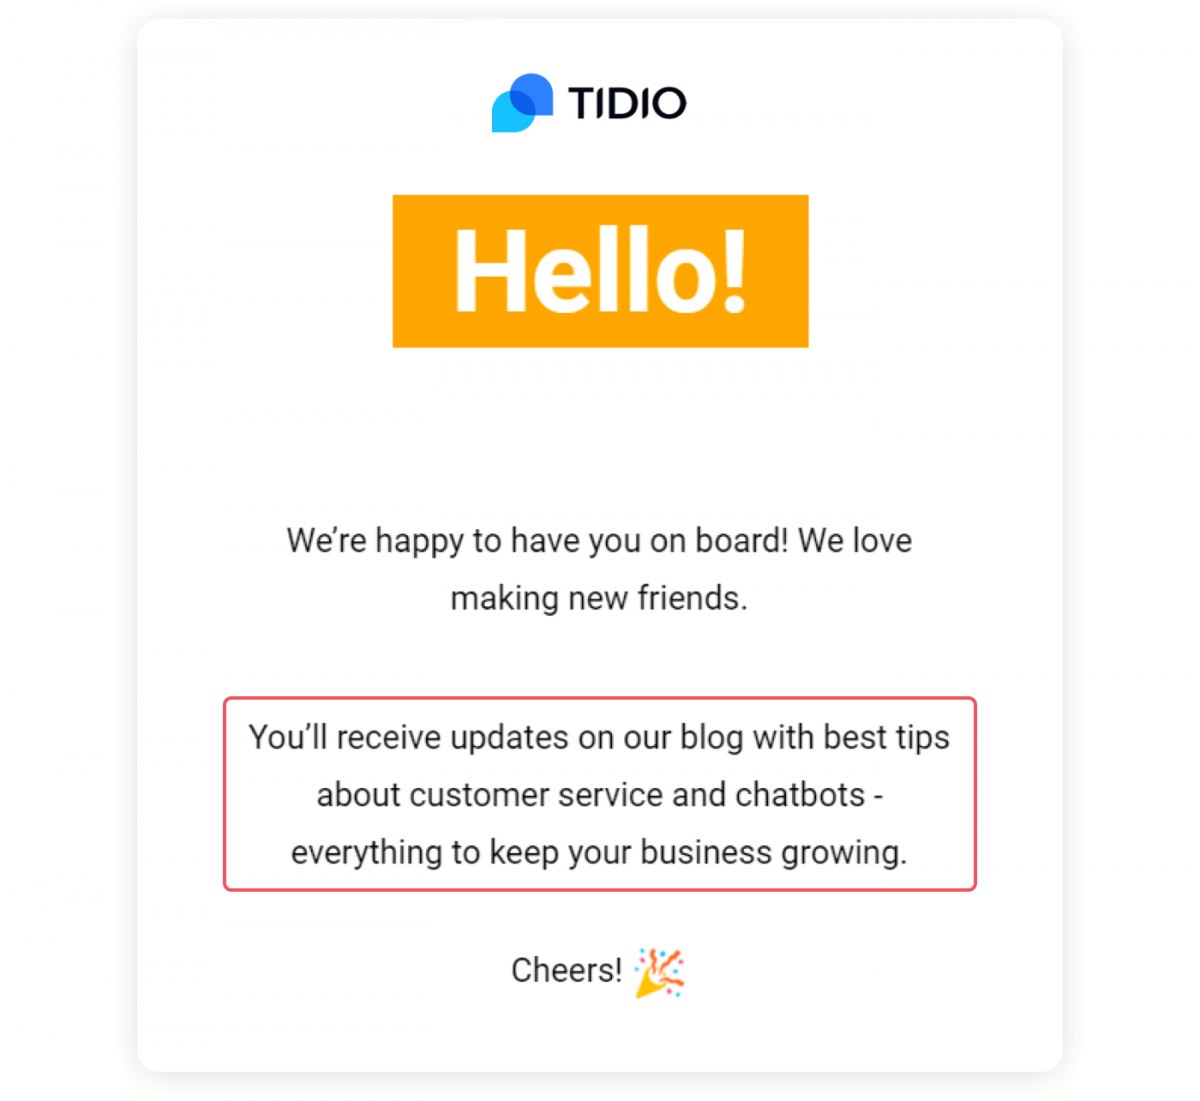 A newsletter welcome message